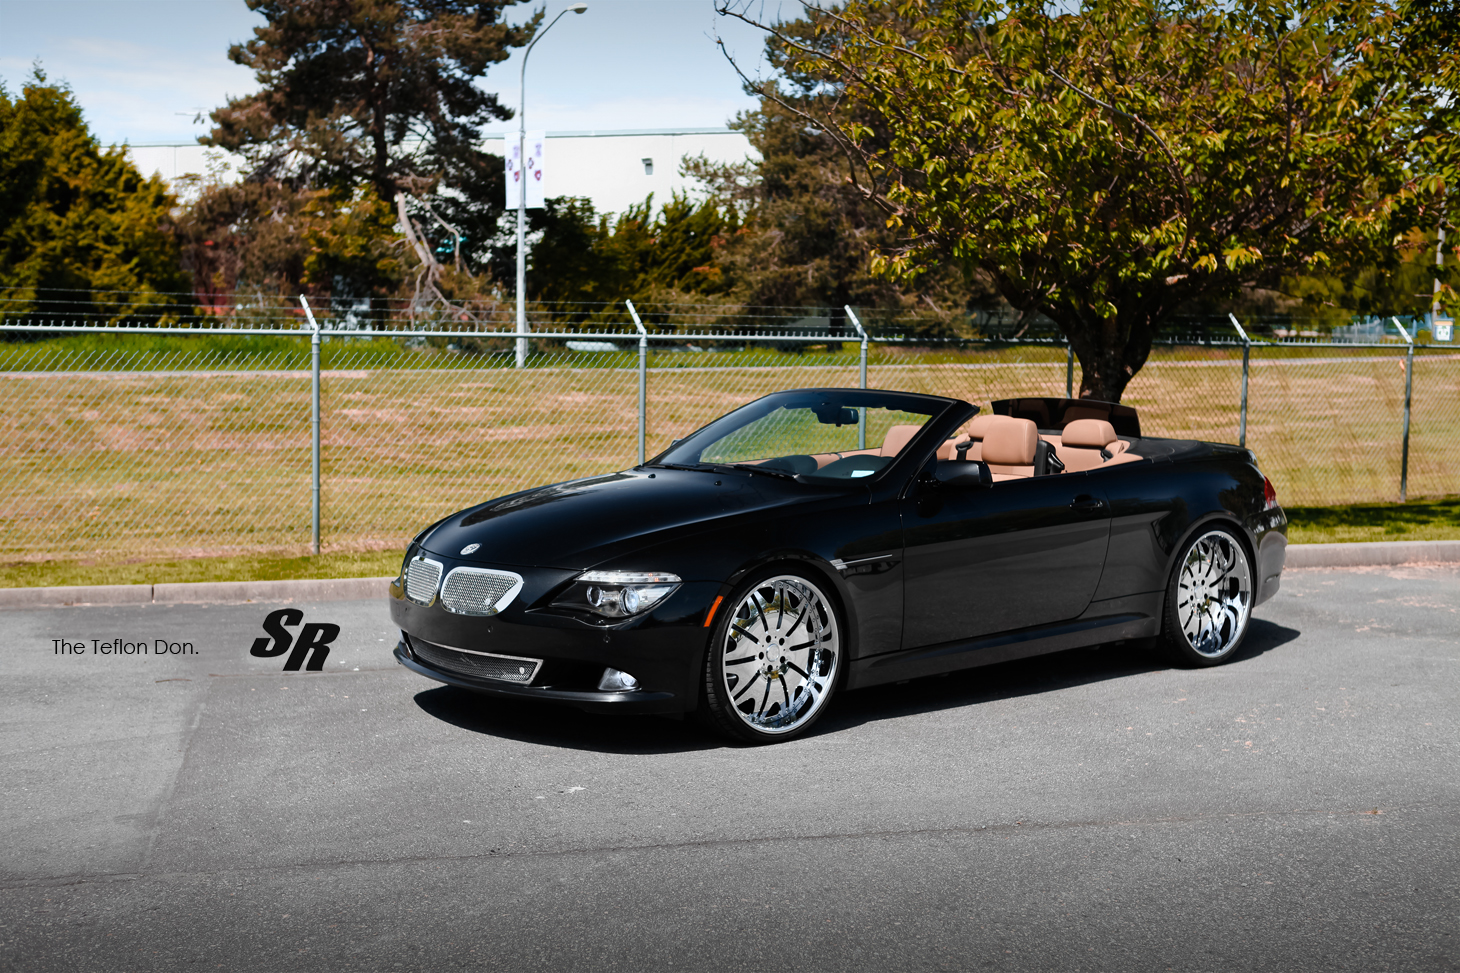 2008 Bmw 6 Series Convertible E64 bmw 6-series by sr auto